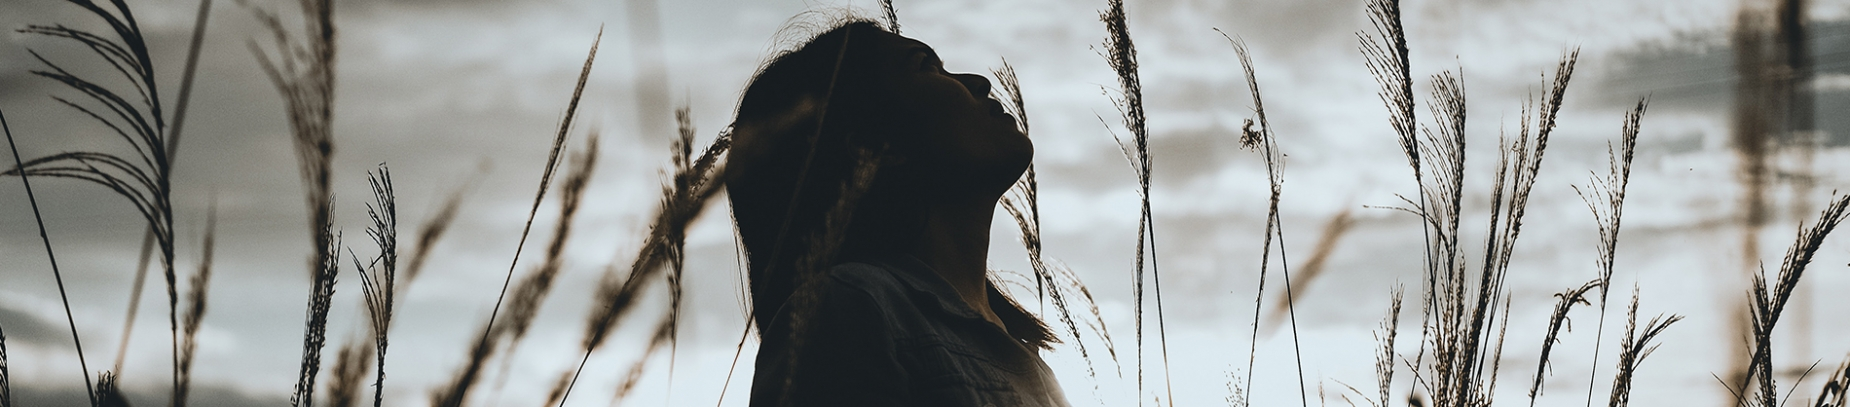 A women stood in a field looking up at the sky